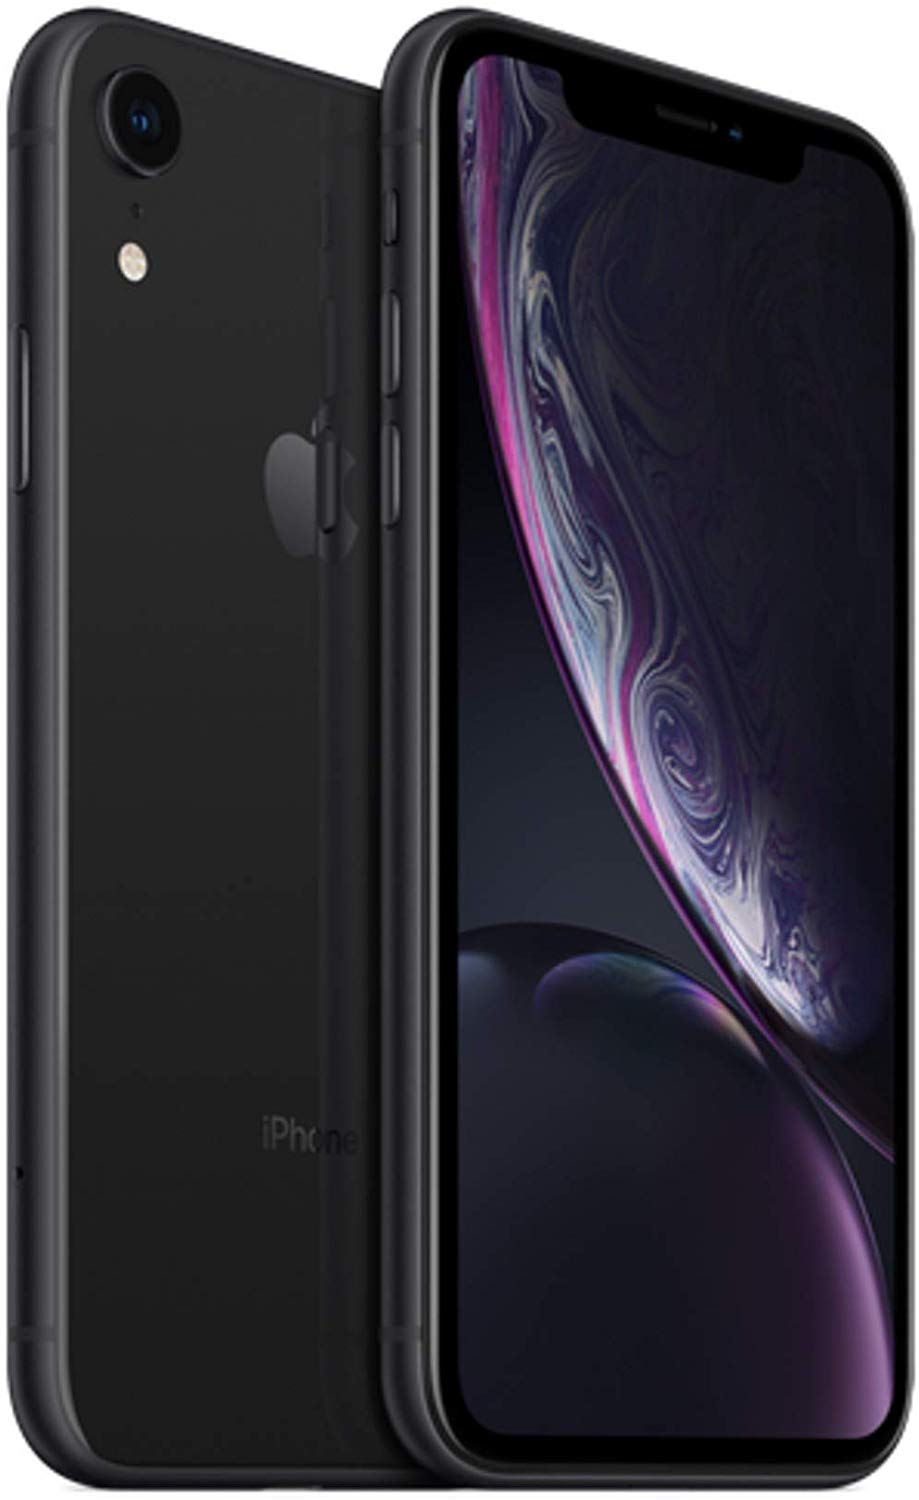 Review of - Apple iPhone XR, 64GB, Black - Fully Unlocked